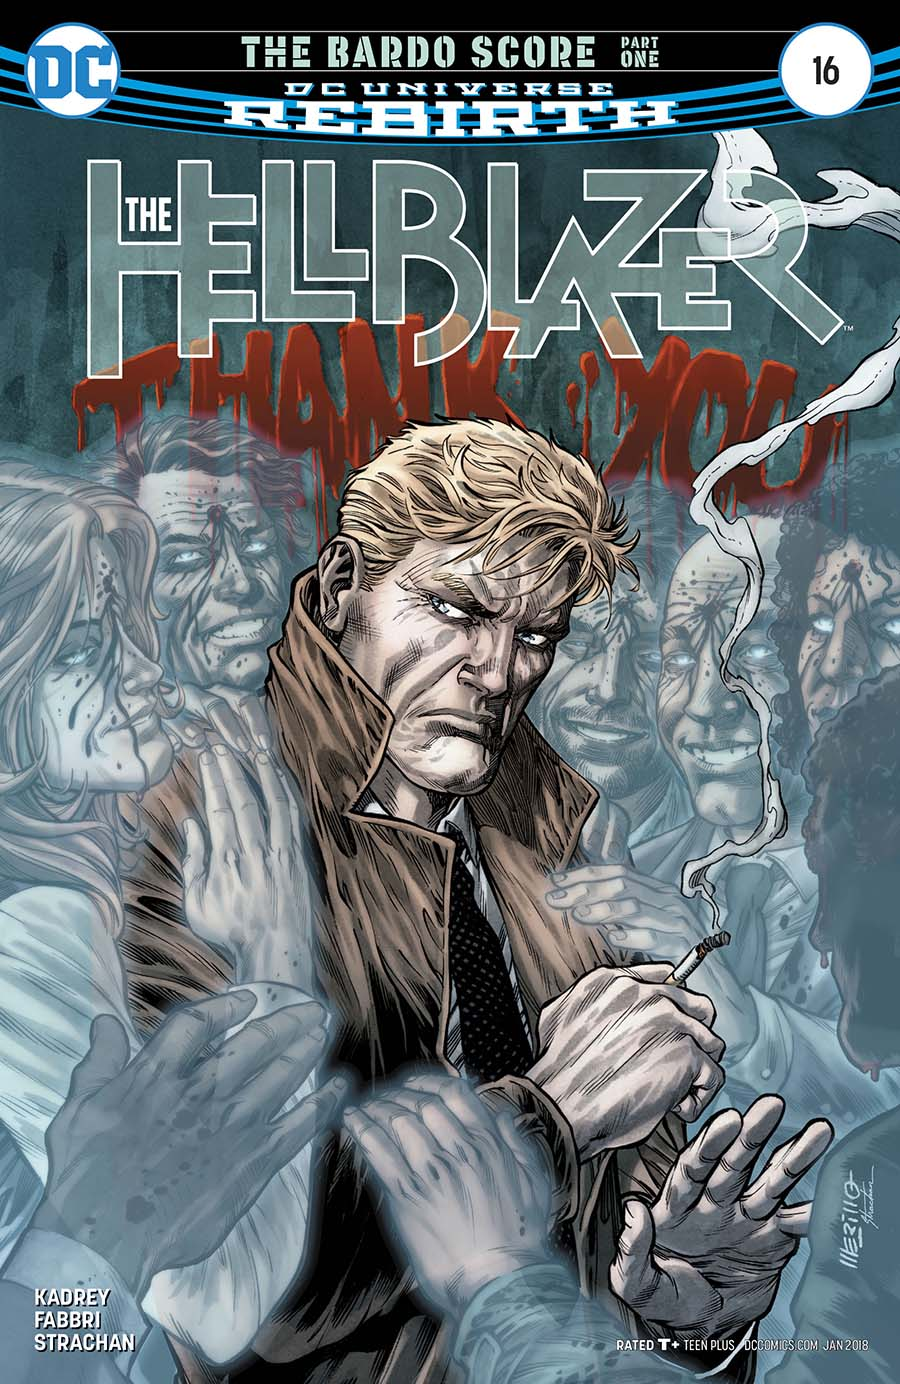 Hellblazer Vol 2 #16 Cover A Regular Jesus Merino Cover